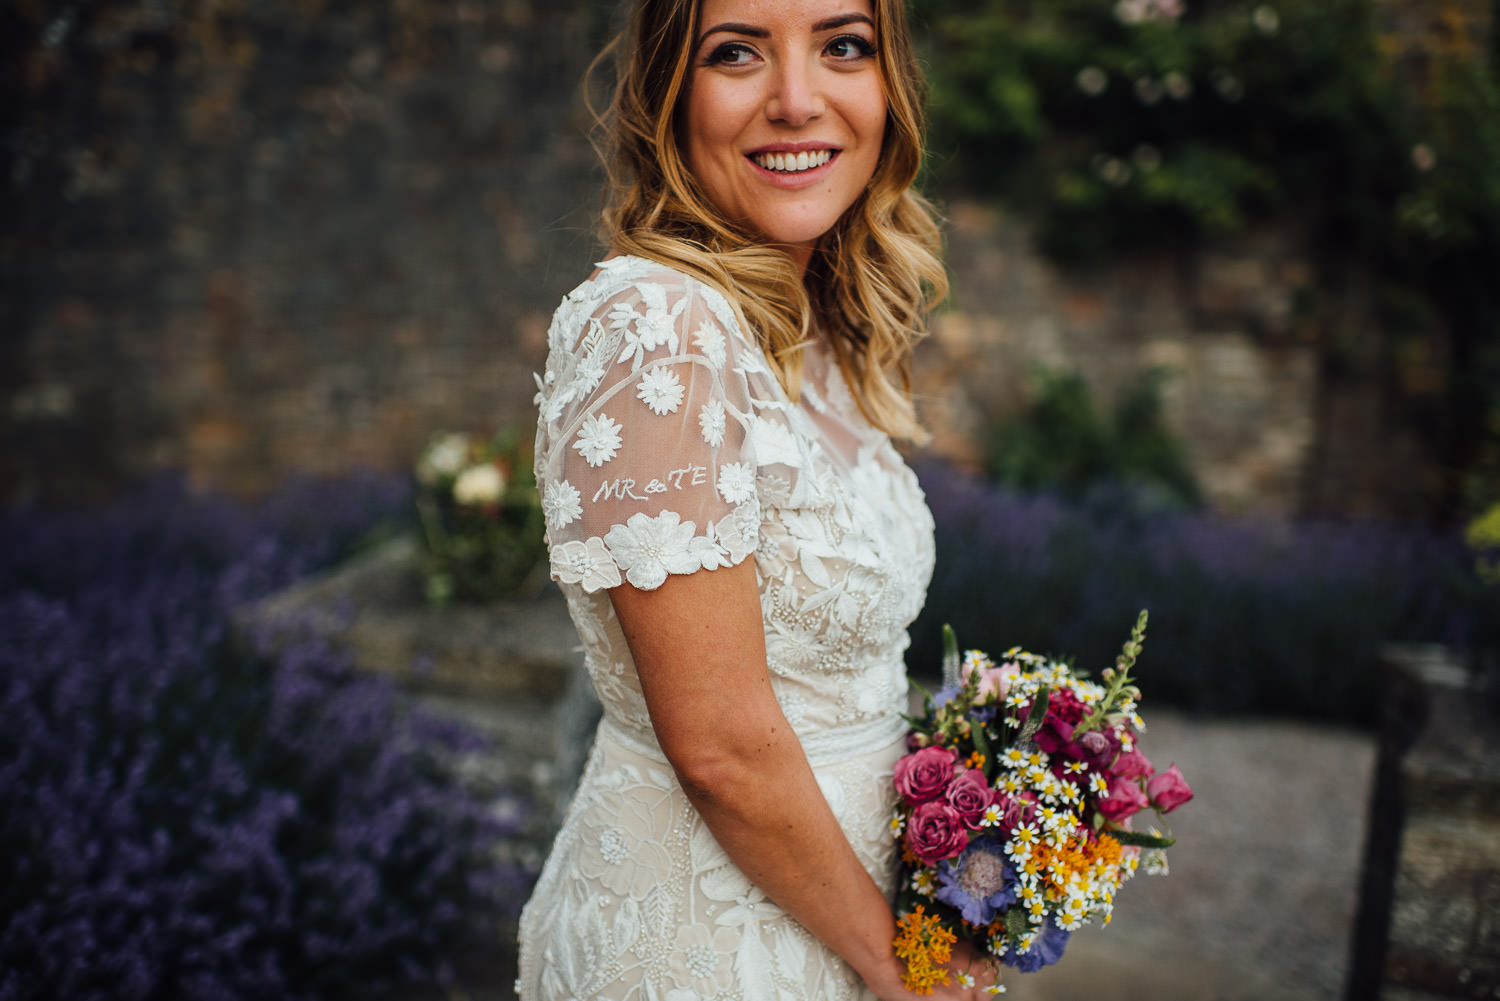 Bride in hermione de paula wedding dress in Barley Wood House Bristol Wedding by bristol wedding photographer the shannons photography